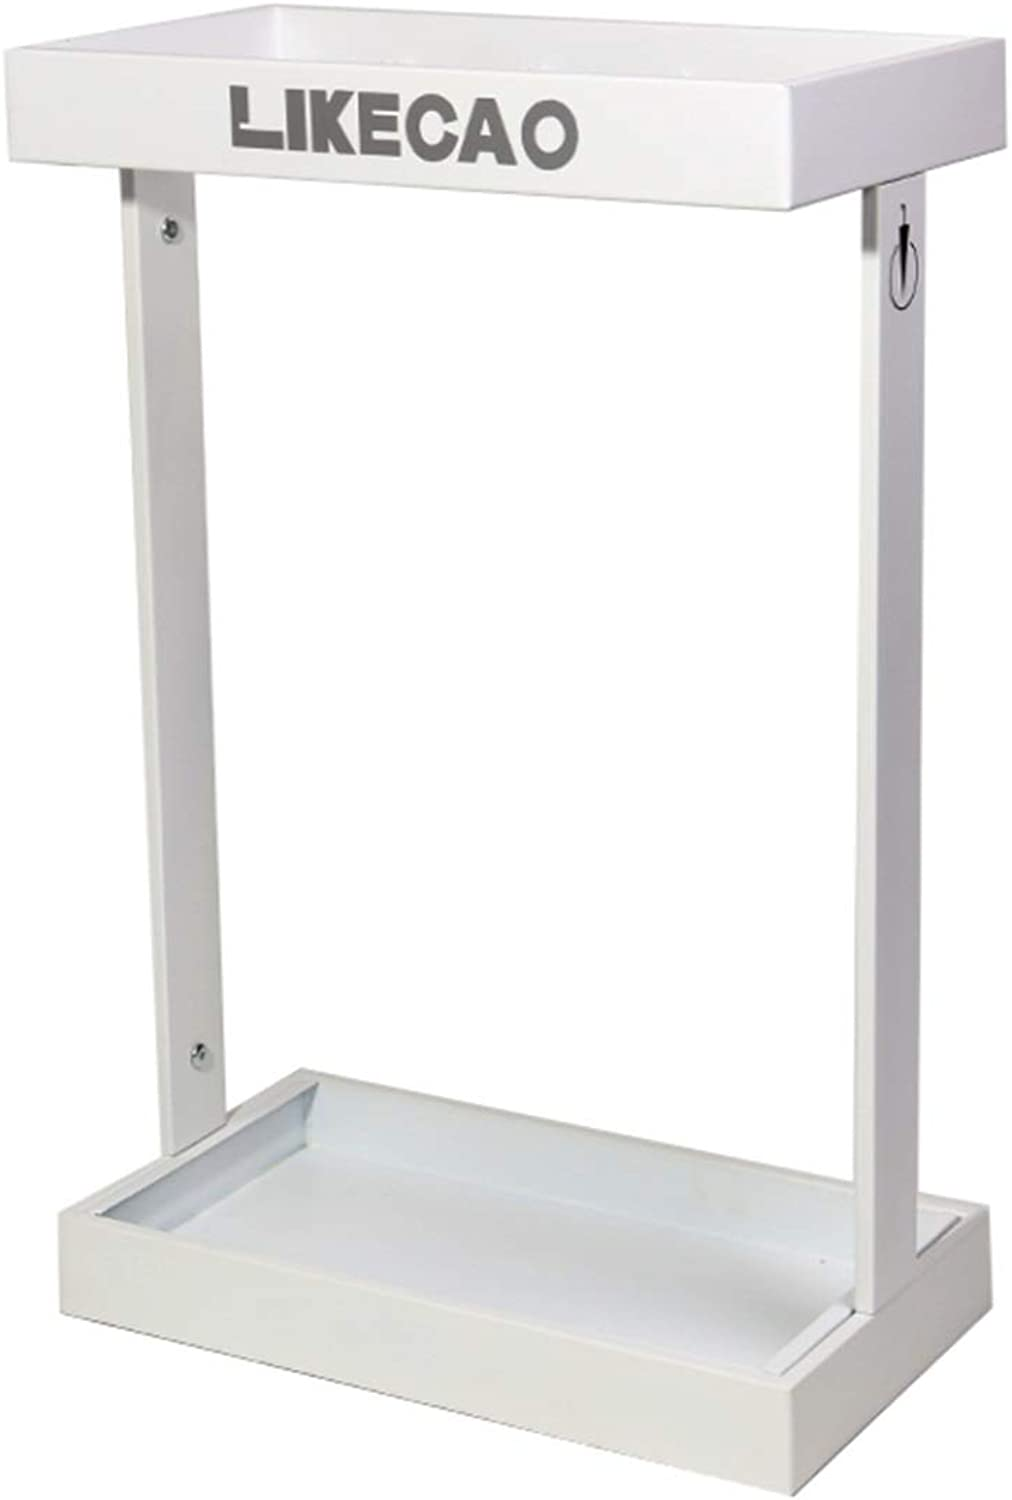 Zr Large-Capacity Fashion Wrought Iron Umbrella Stand Home Office Supermarket Floor-Standing Simple Storage Bucket (color   White)